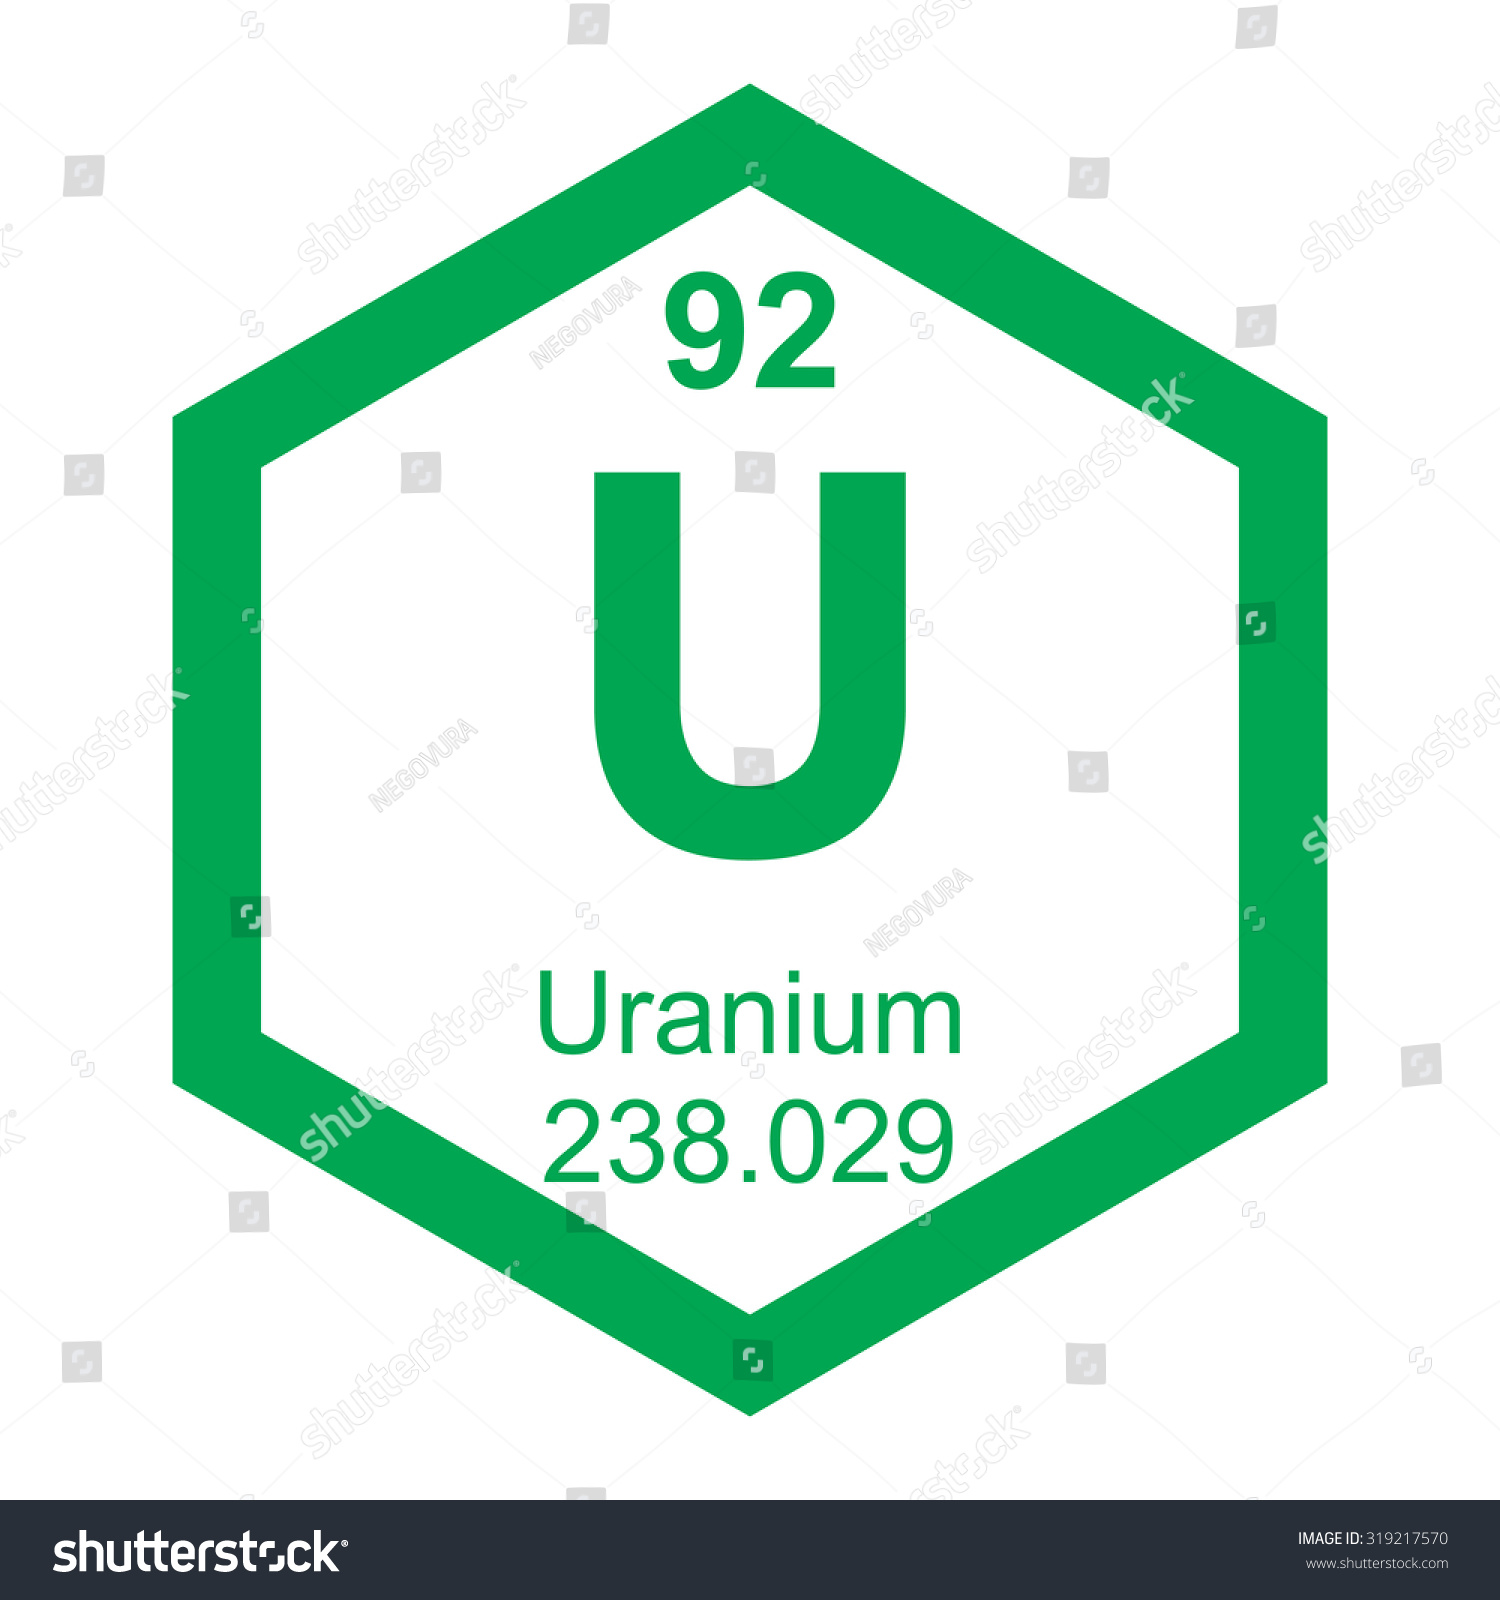 Periodic table uranium element stock vector 319217570 shutterstock periodic table uranium element gamestrikefo Image collections